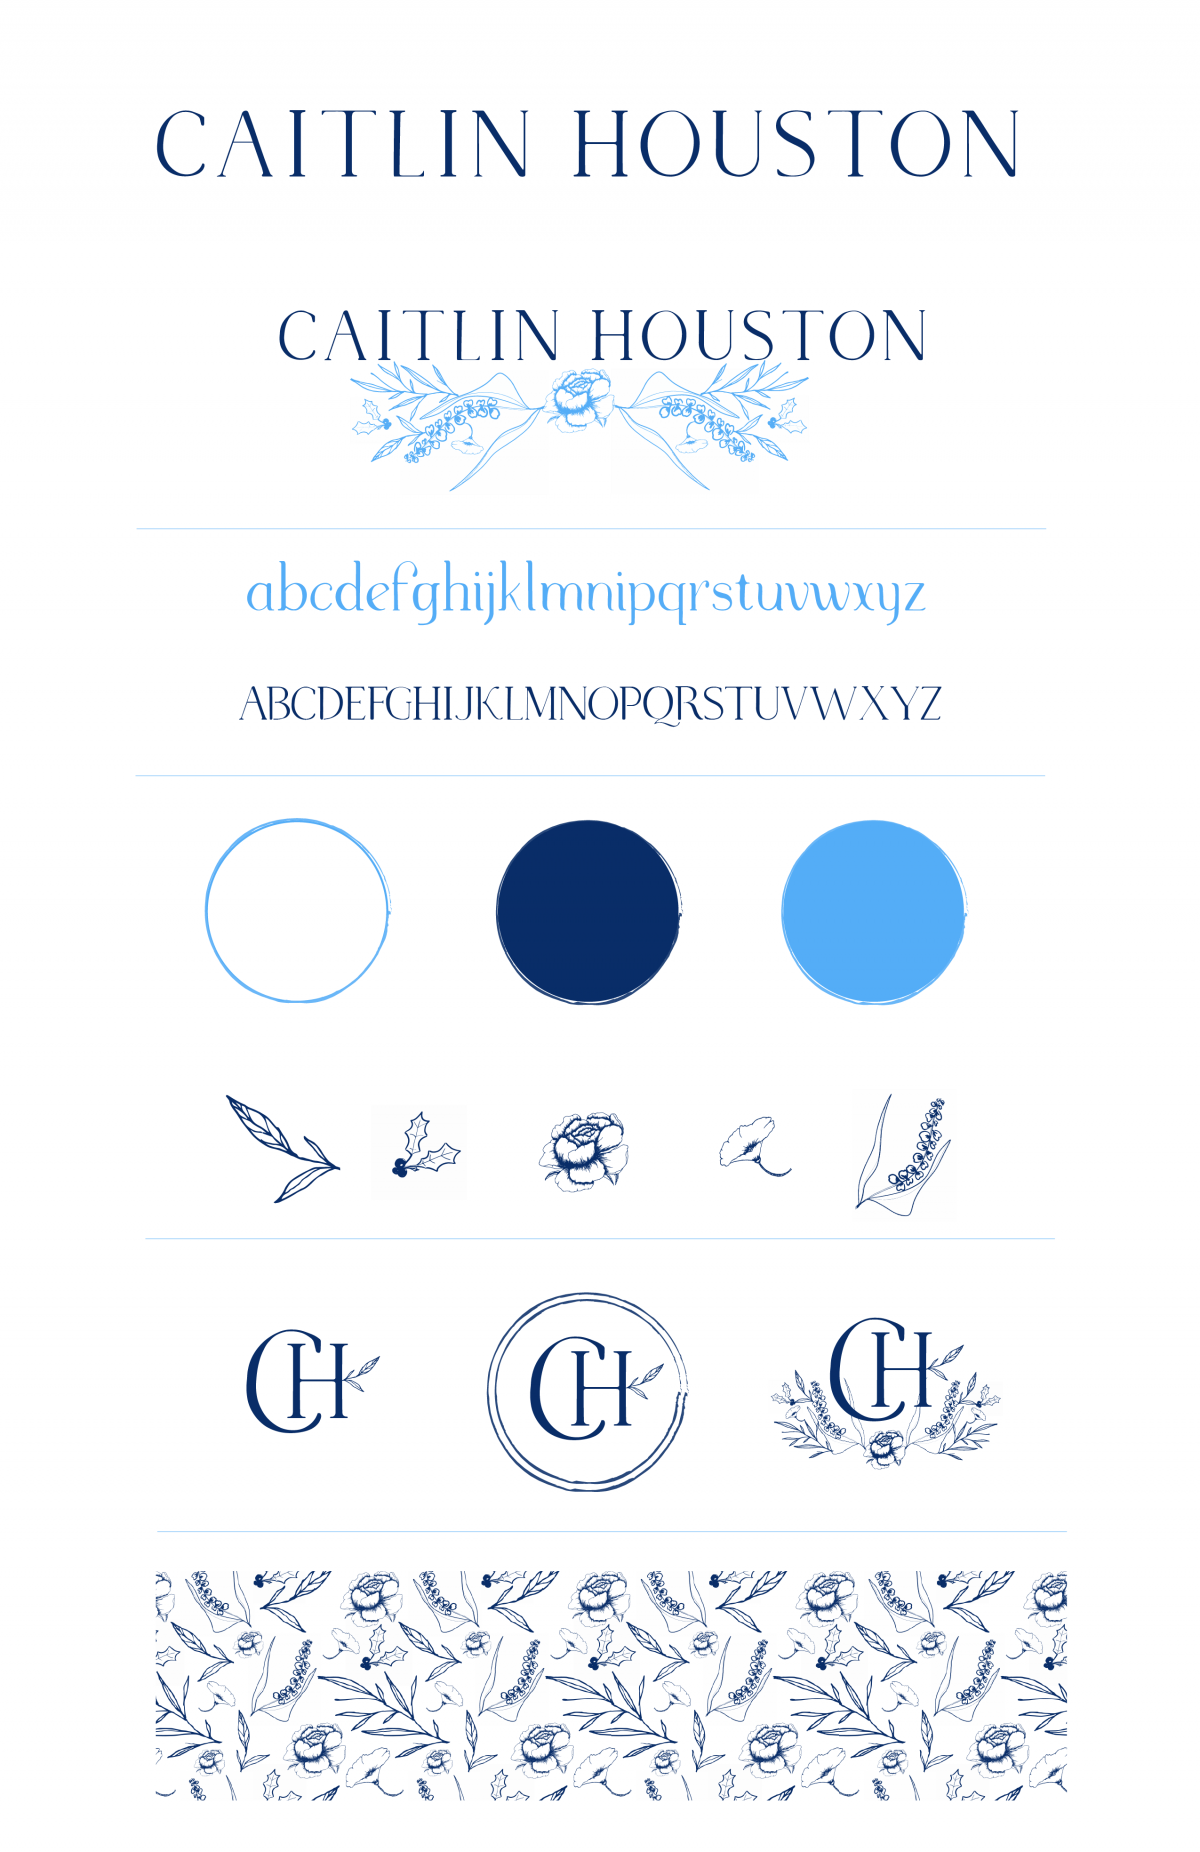 Why I Rebranded My Blog - Caitlin Houston - Brand Board Example